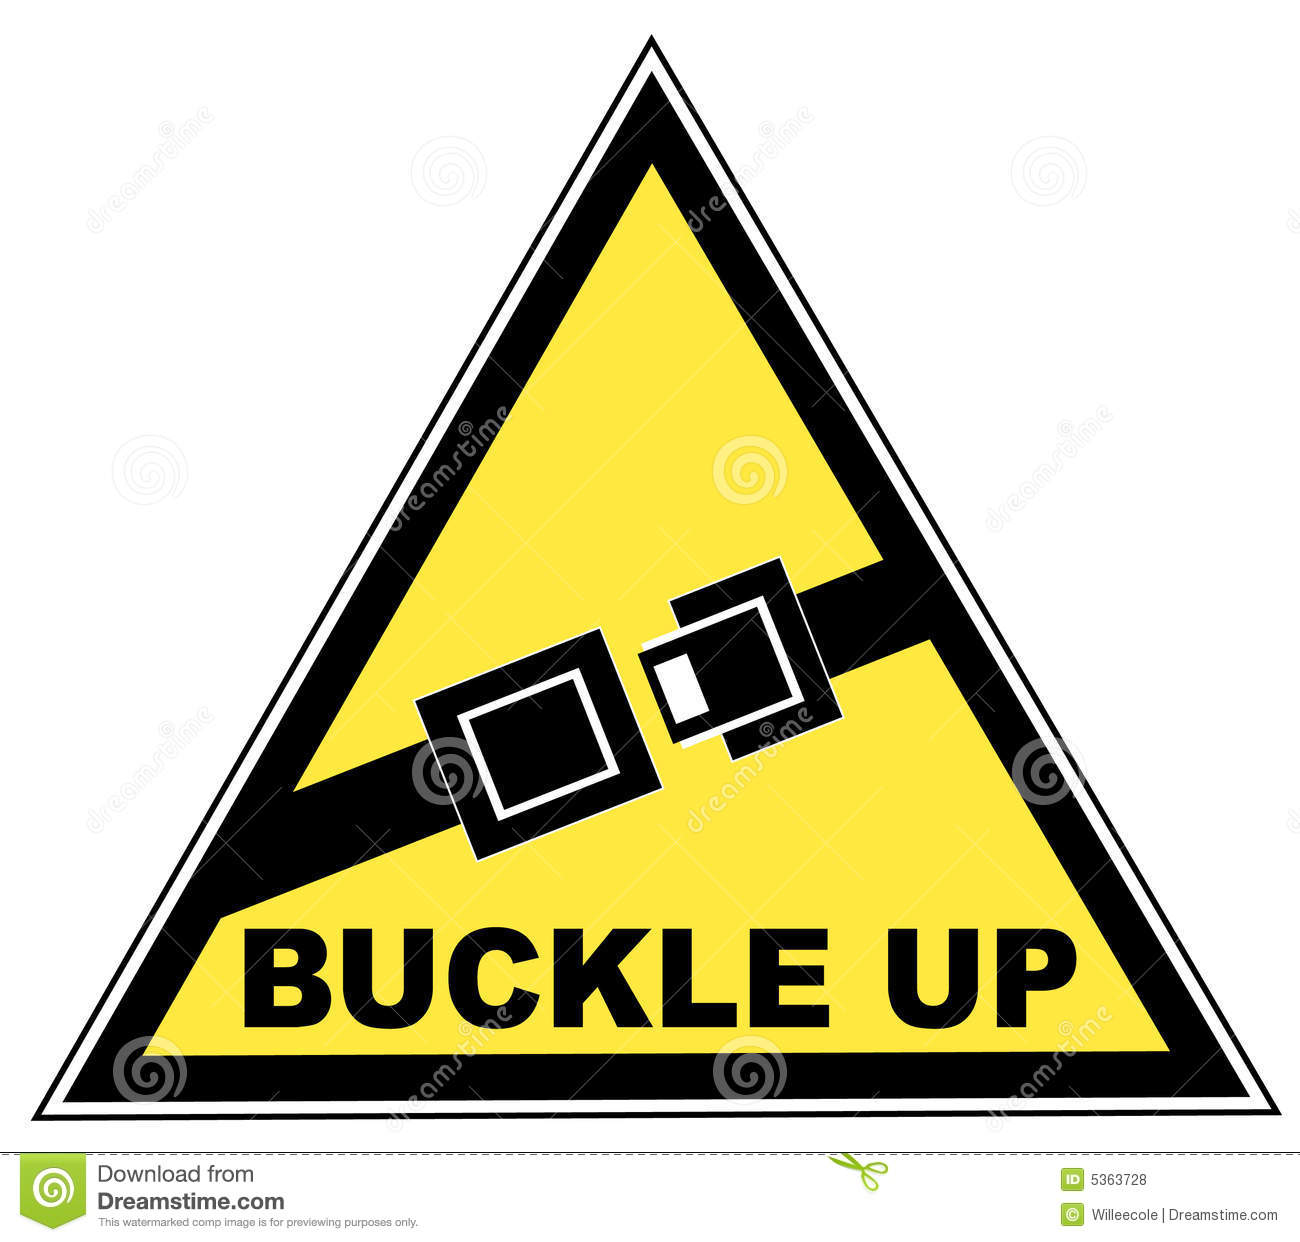 Buckle Up Seatbelt Sign Royalty Free Stock Photos - Image: 5363728